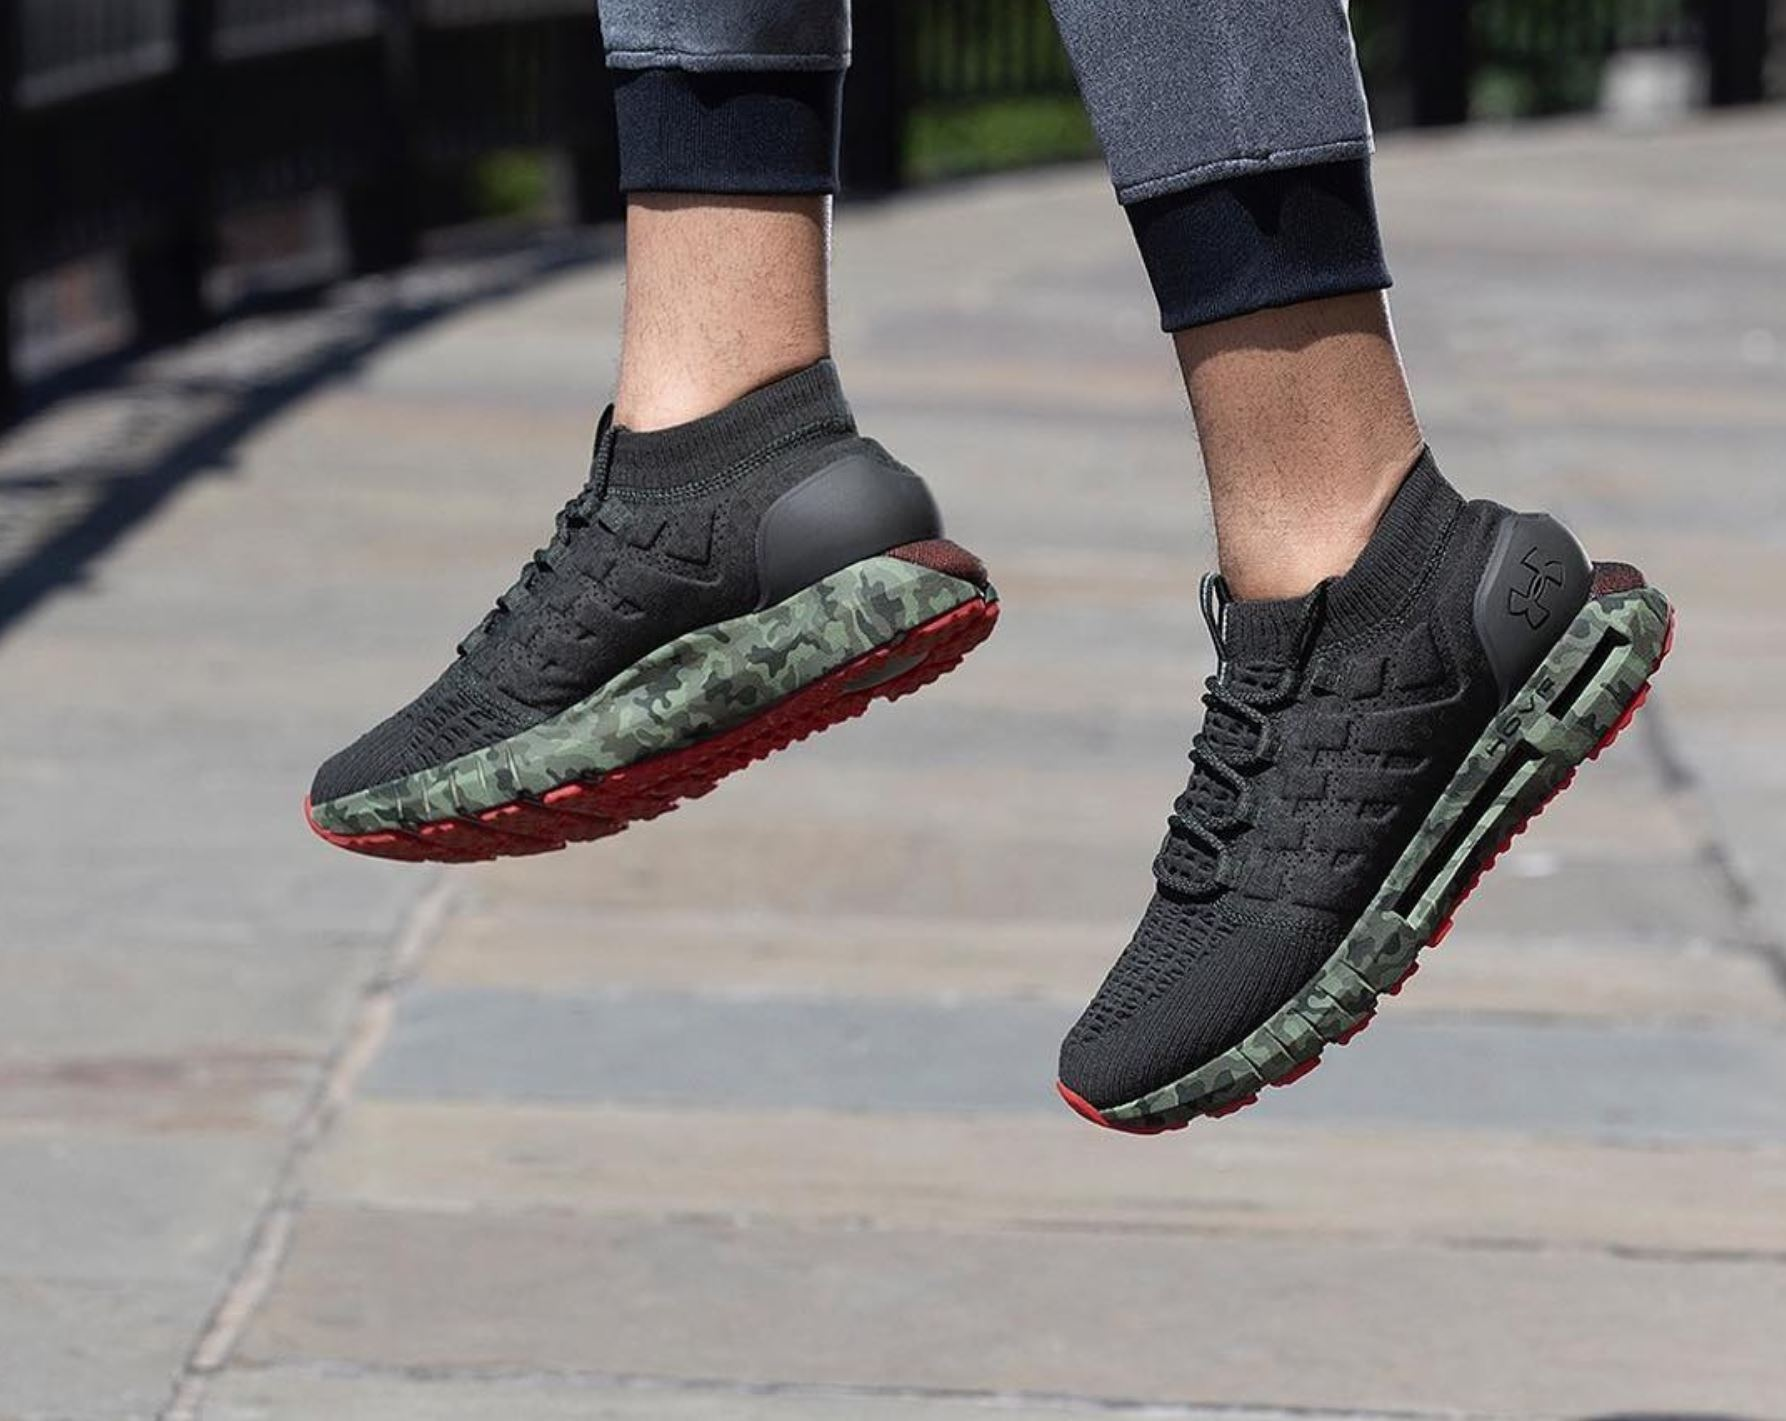 new arrival b3cc1 0448d Camo is Coming to the Under Armour HOVR Phantom This Friday ...